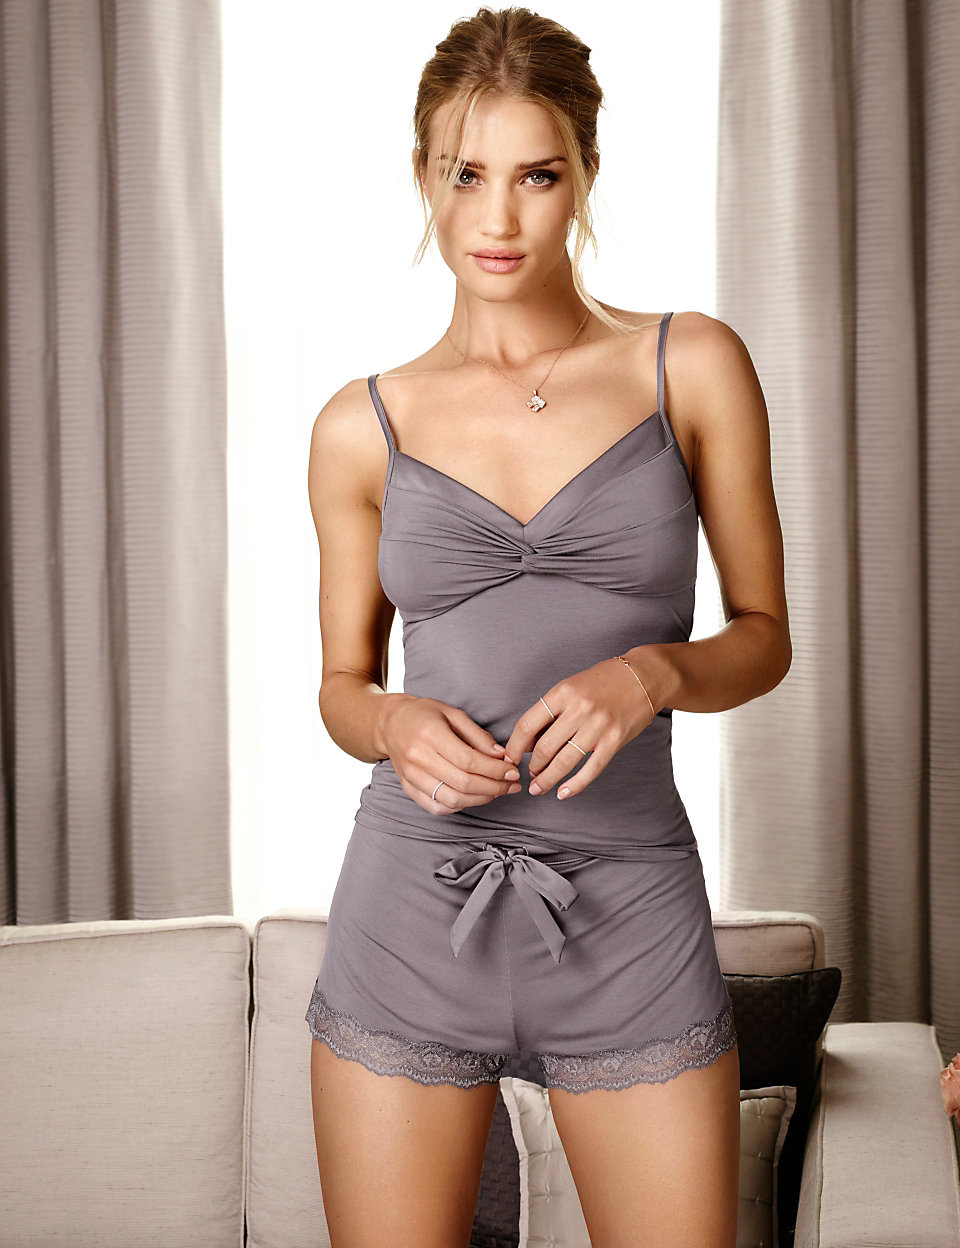 Rosie Huntington-Whiteley Hot Photoshoot Stills